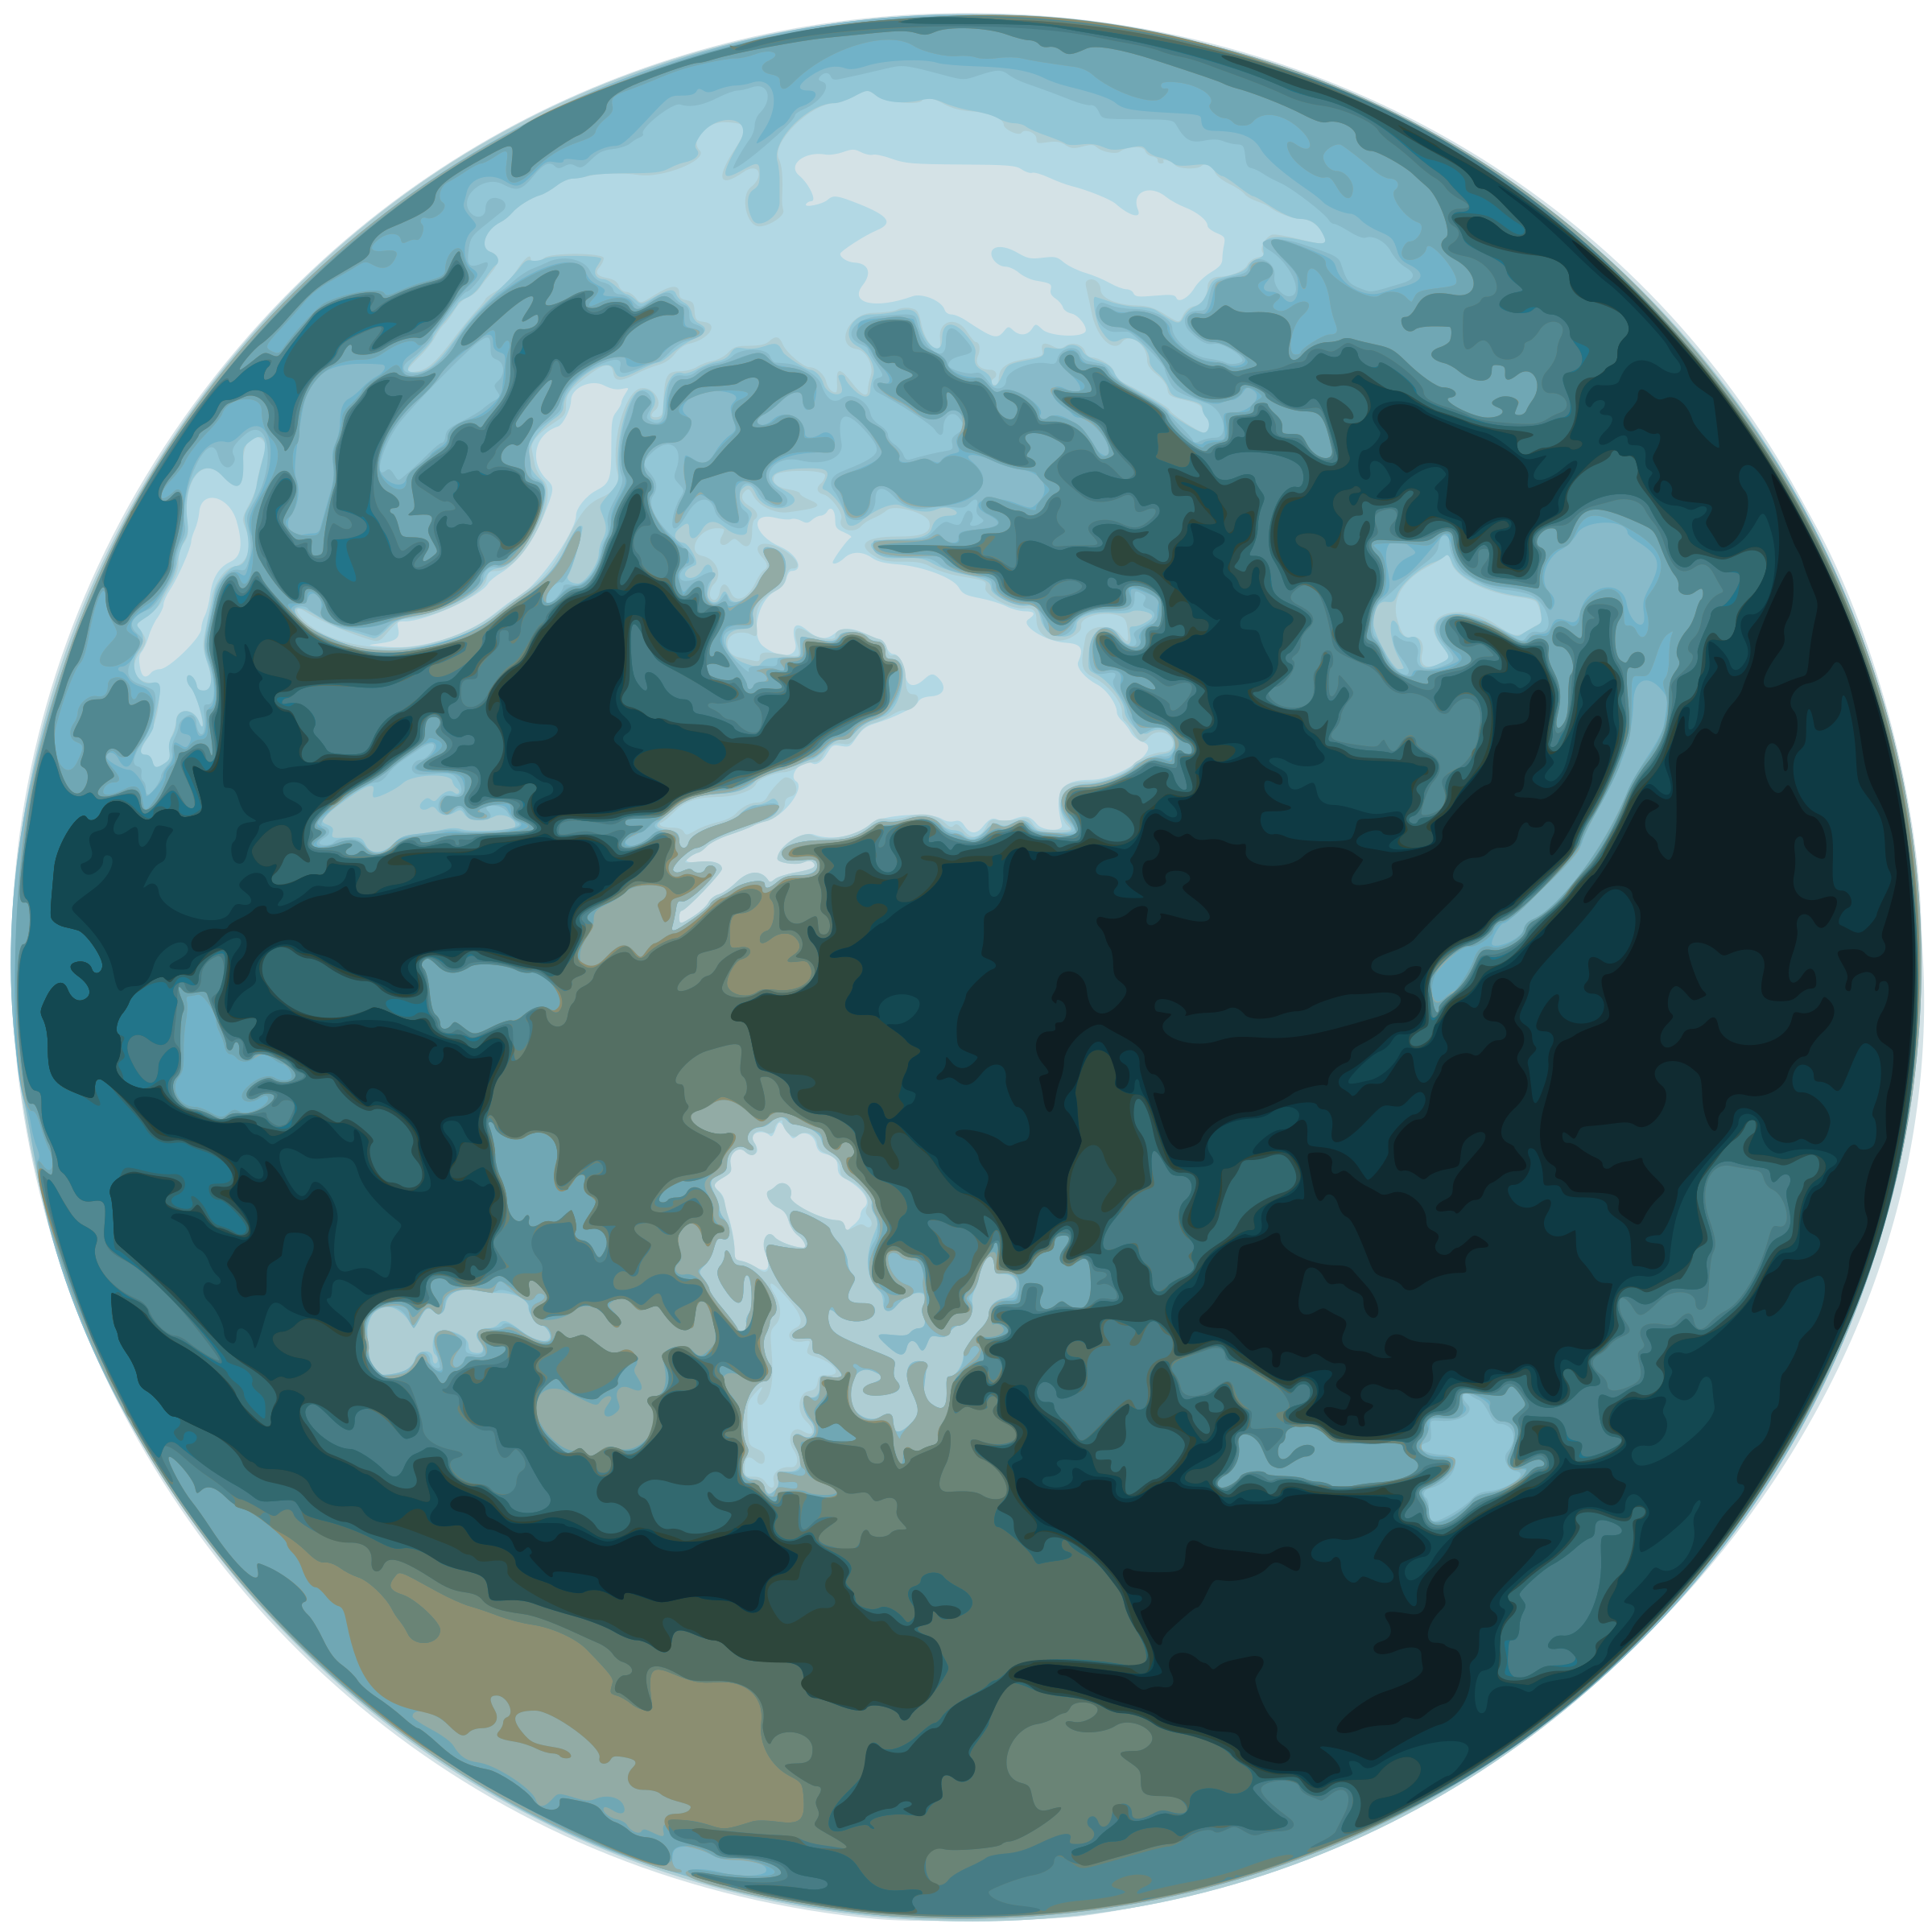 Clipart earth atmosphere. Big image png